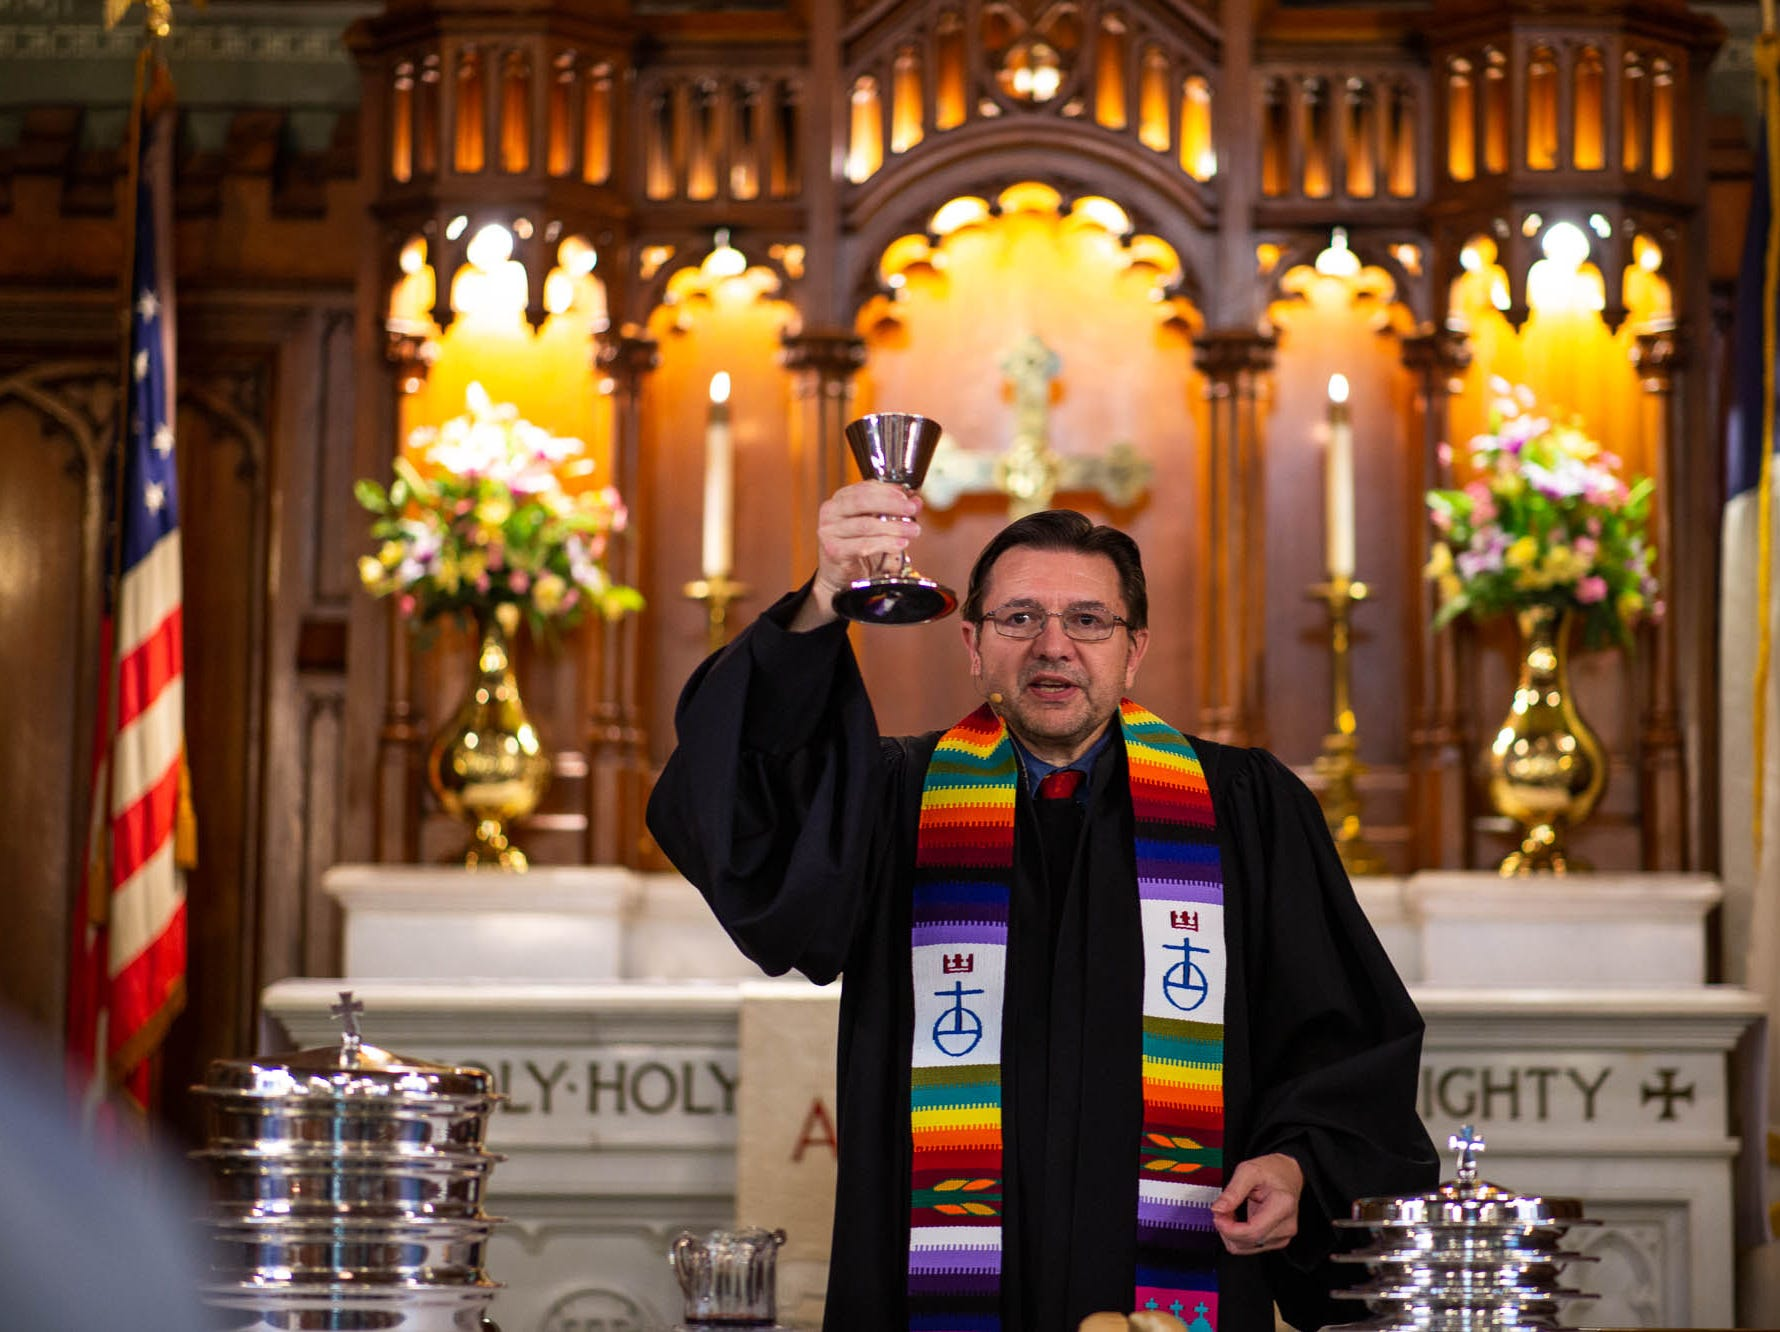 Reverend Russell Clark prepares to lead his congregation in communion during a diversity service at the Emmanuel United Church of Christ, Sunday, April 7, 2019, in Hanover. Reverend Clark is the first openly gay pastor at the church.